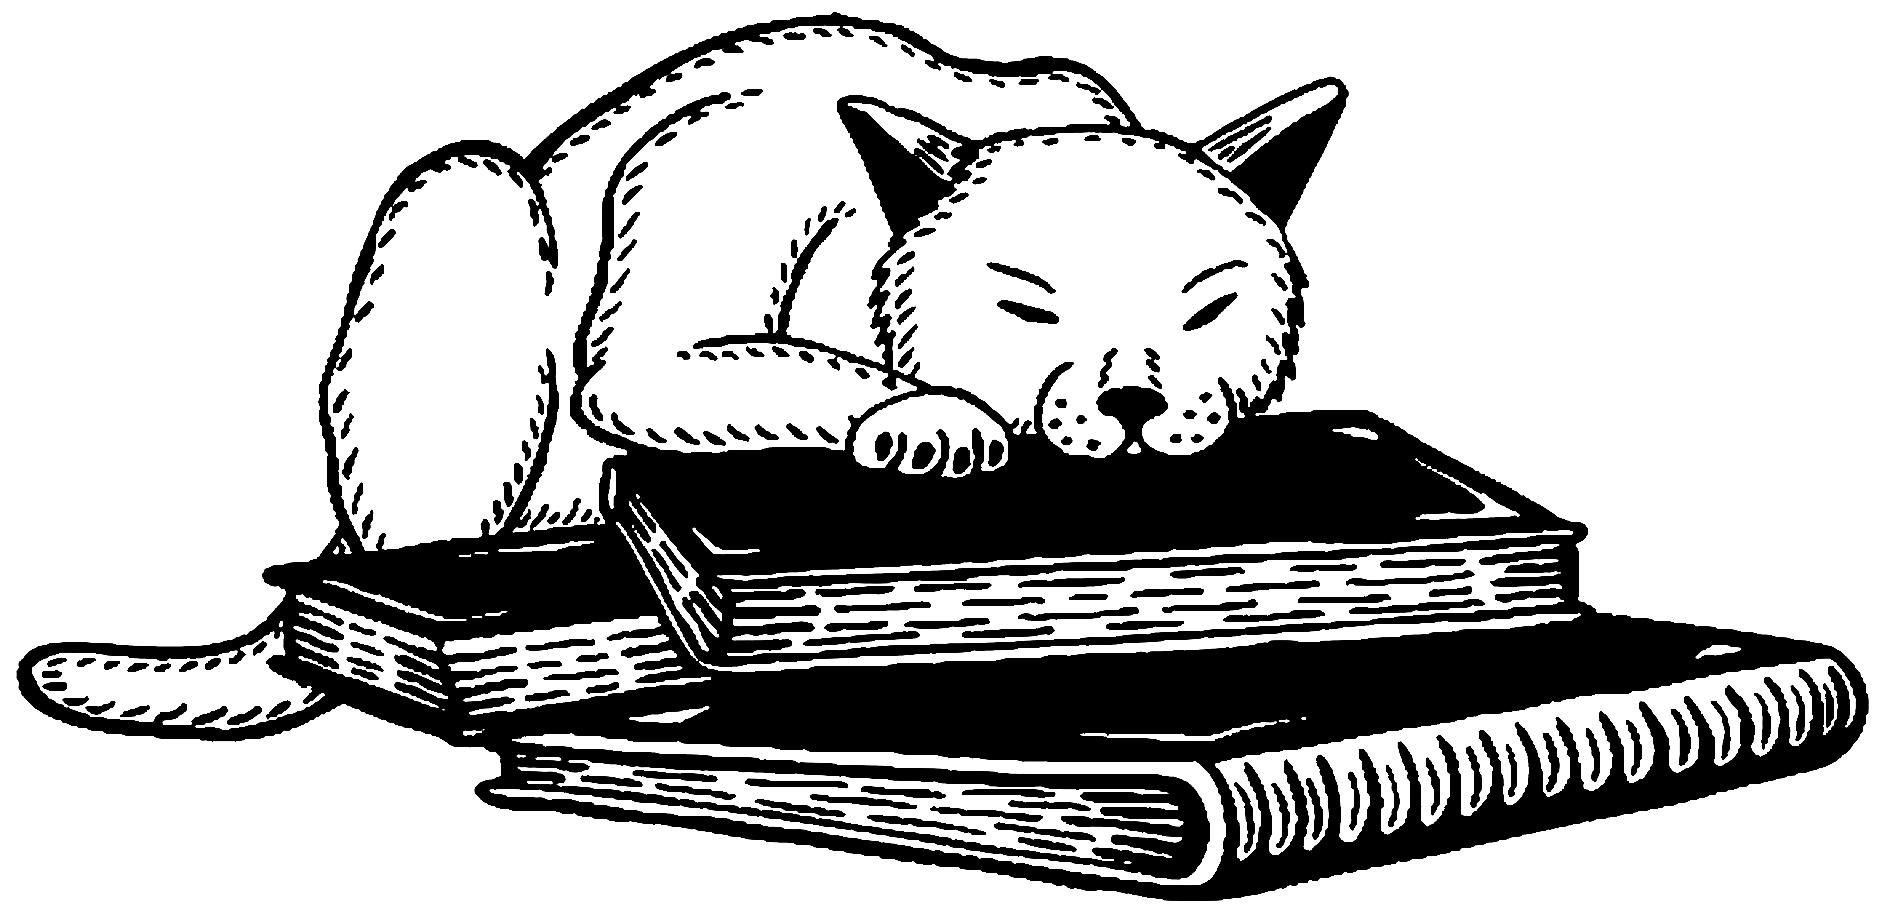 Puss In Books Illustration - Jenny Bommert